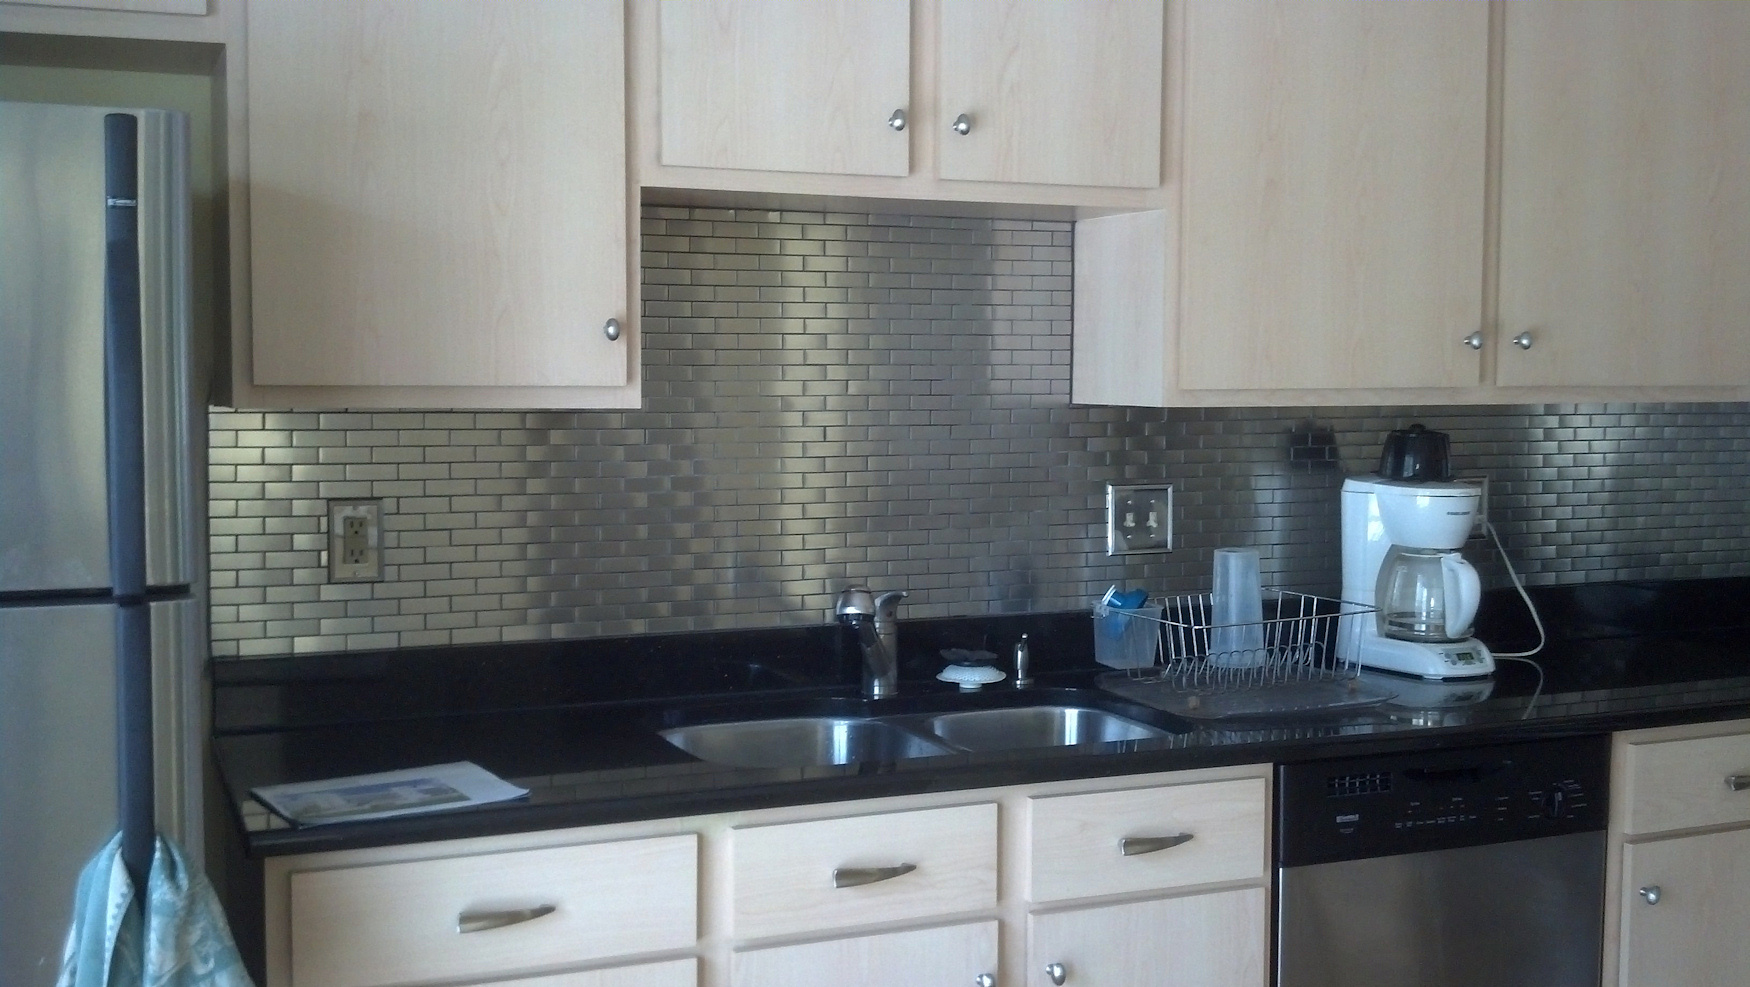 Wonderful Stainless Steel Subway Tile Kitchen Backsplash